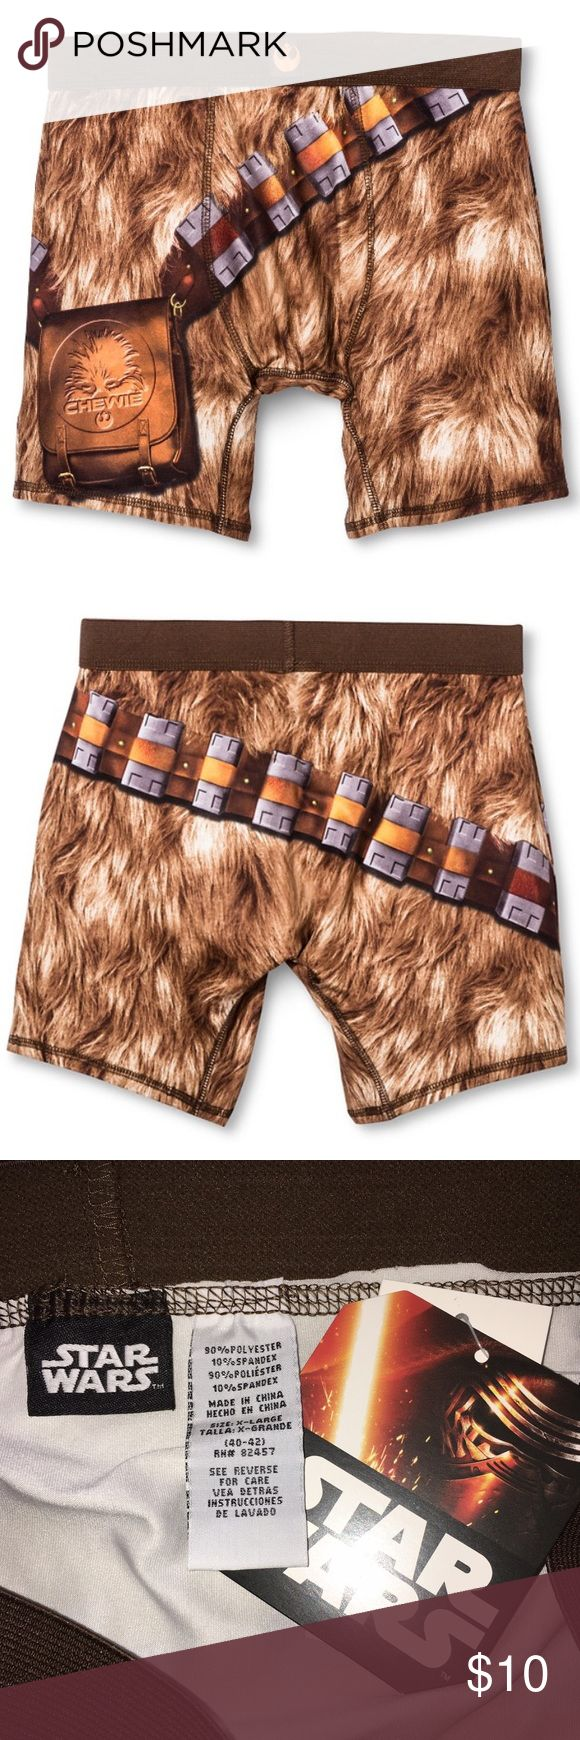 Sz L - Men's Star Wars Boxer Briefs Brand new with tag, 100% polyester. Size L - for waist size 36-38. Mid-rise elastic waistband down to mid thigh. Star Wars Underwear & Socks Boxer Briefs